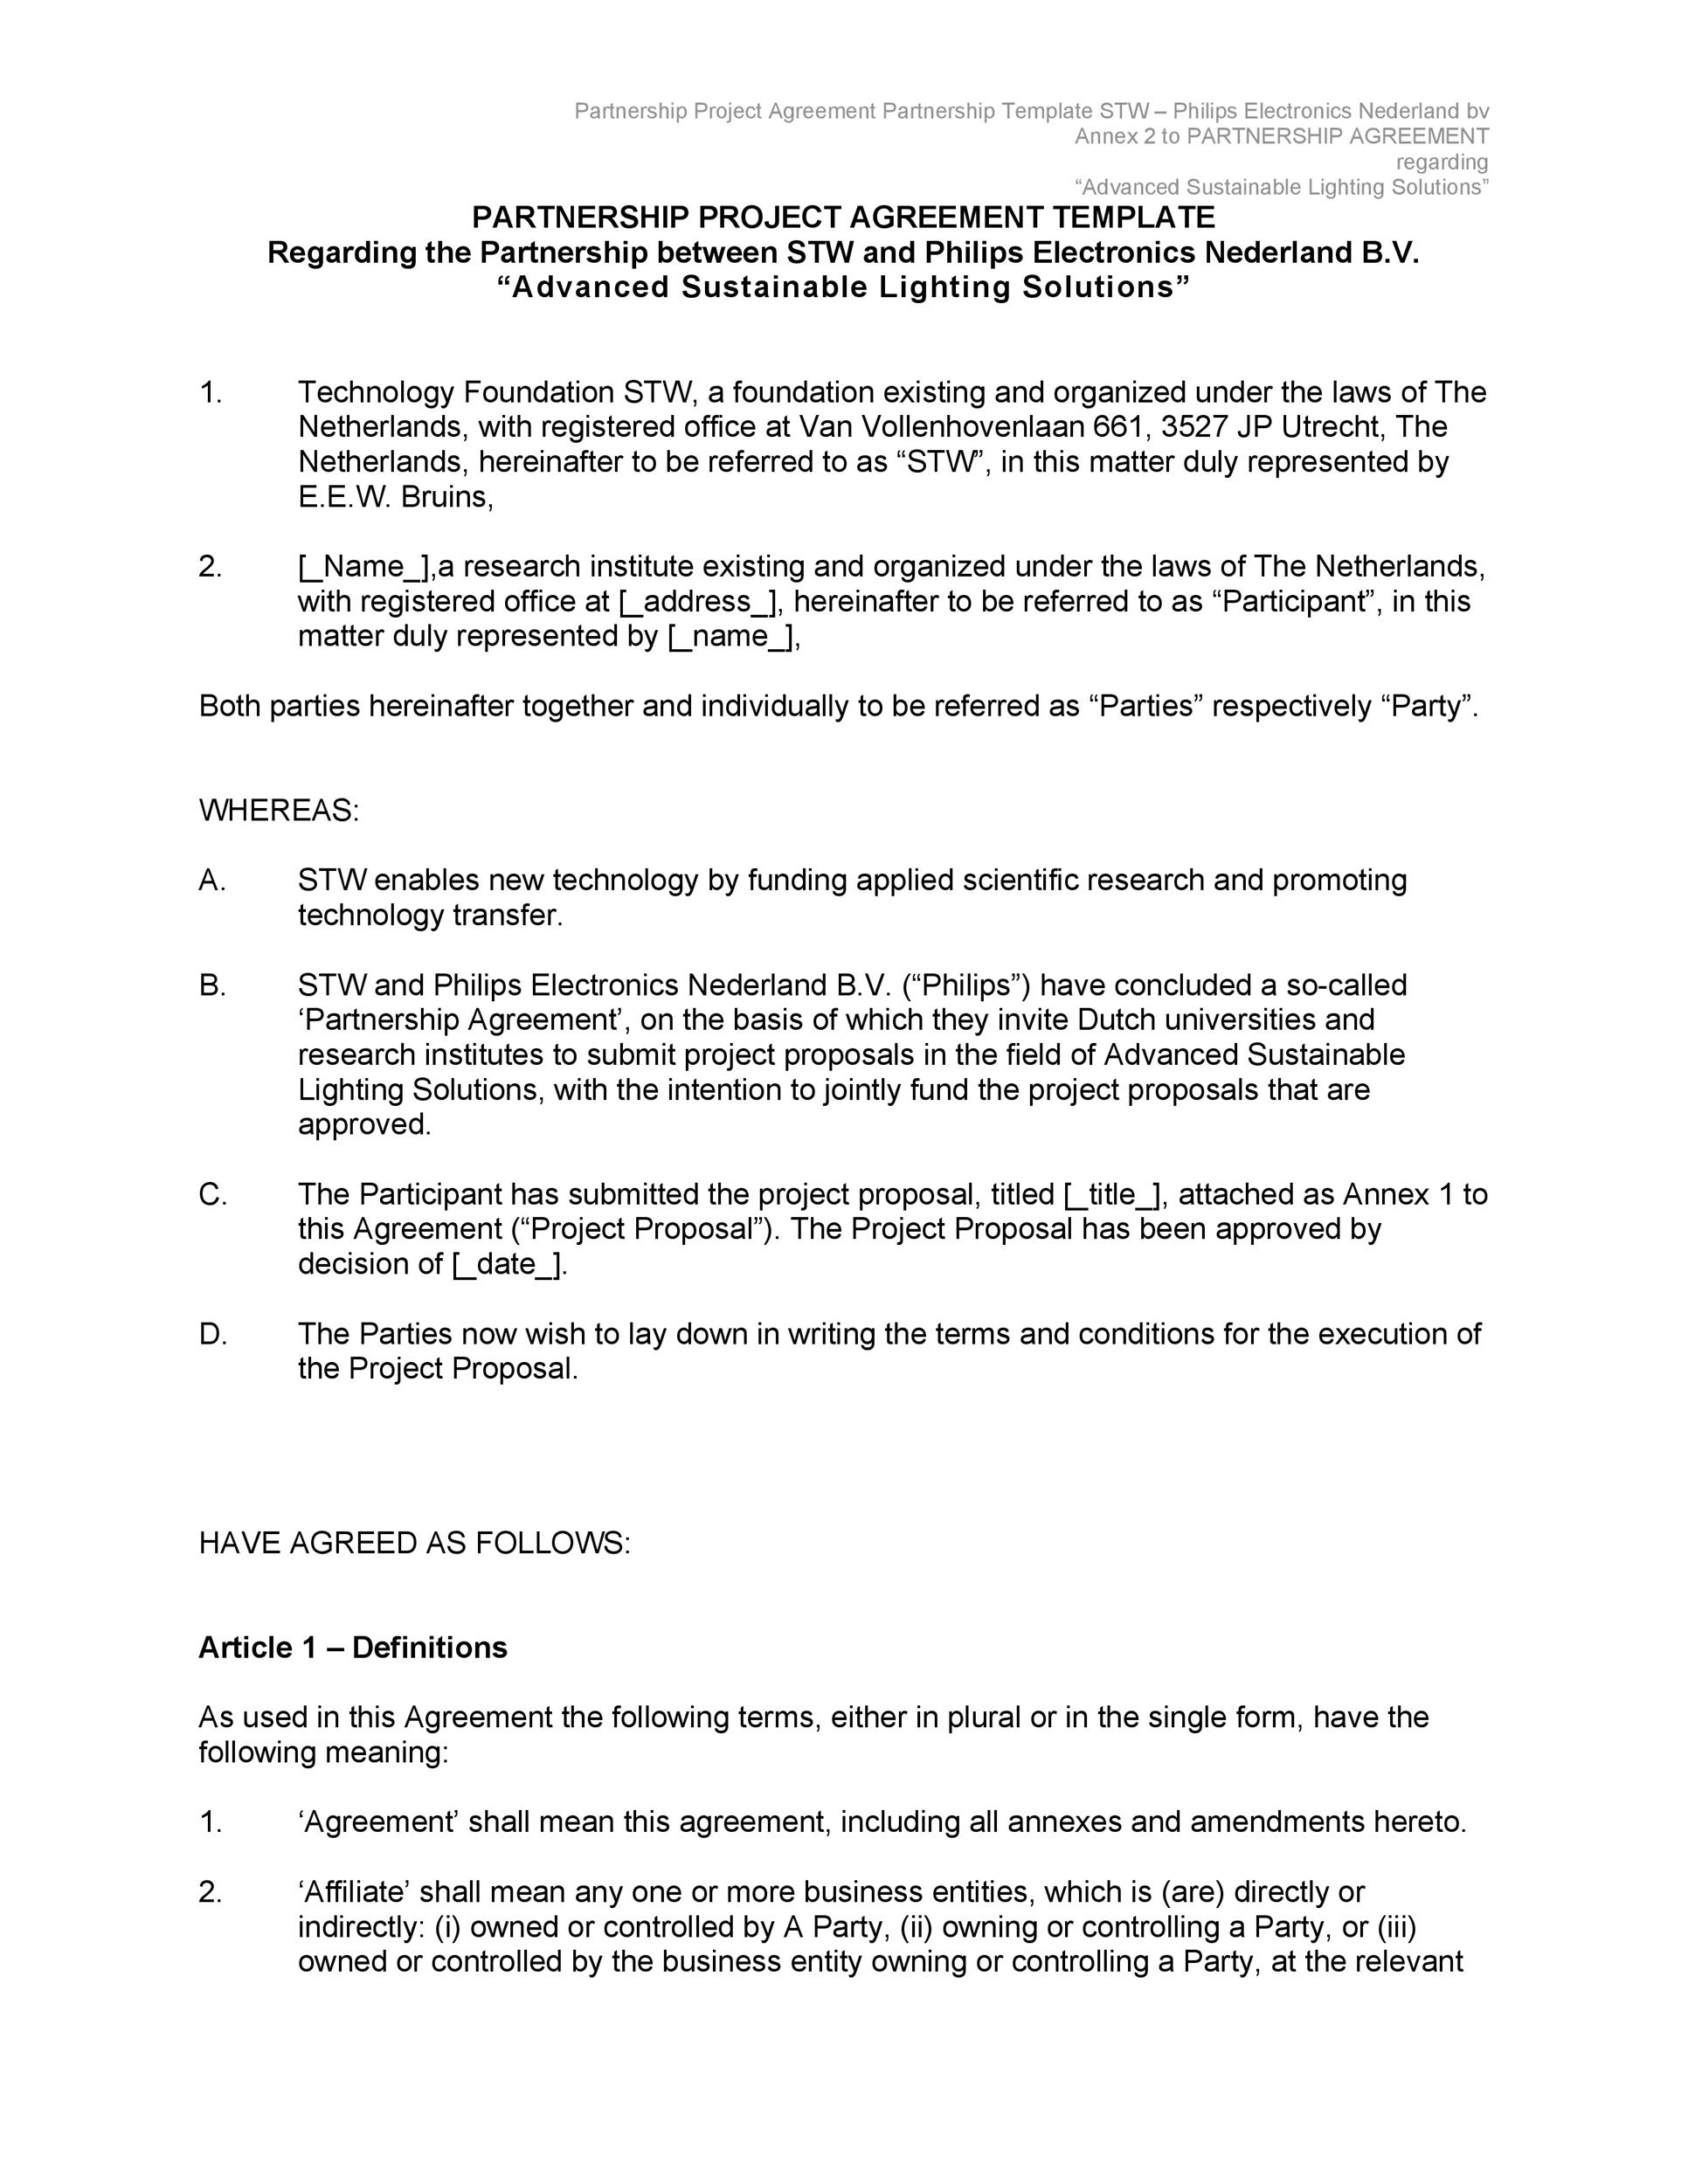 Partnership Agreement Template 22